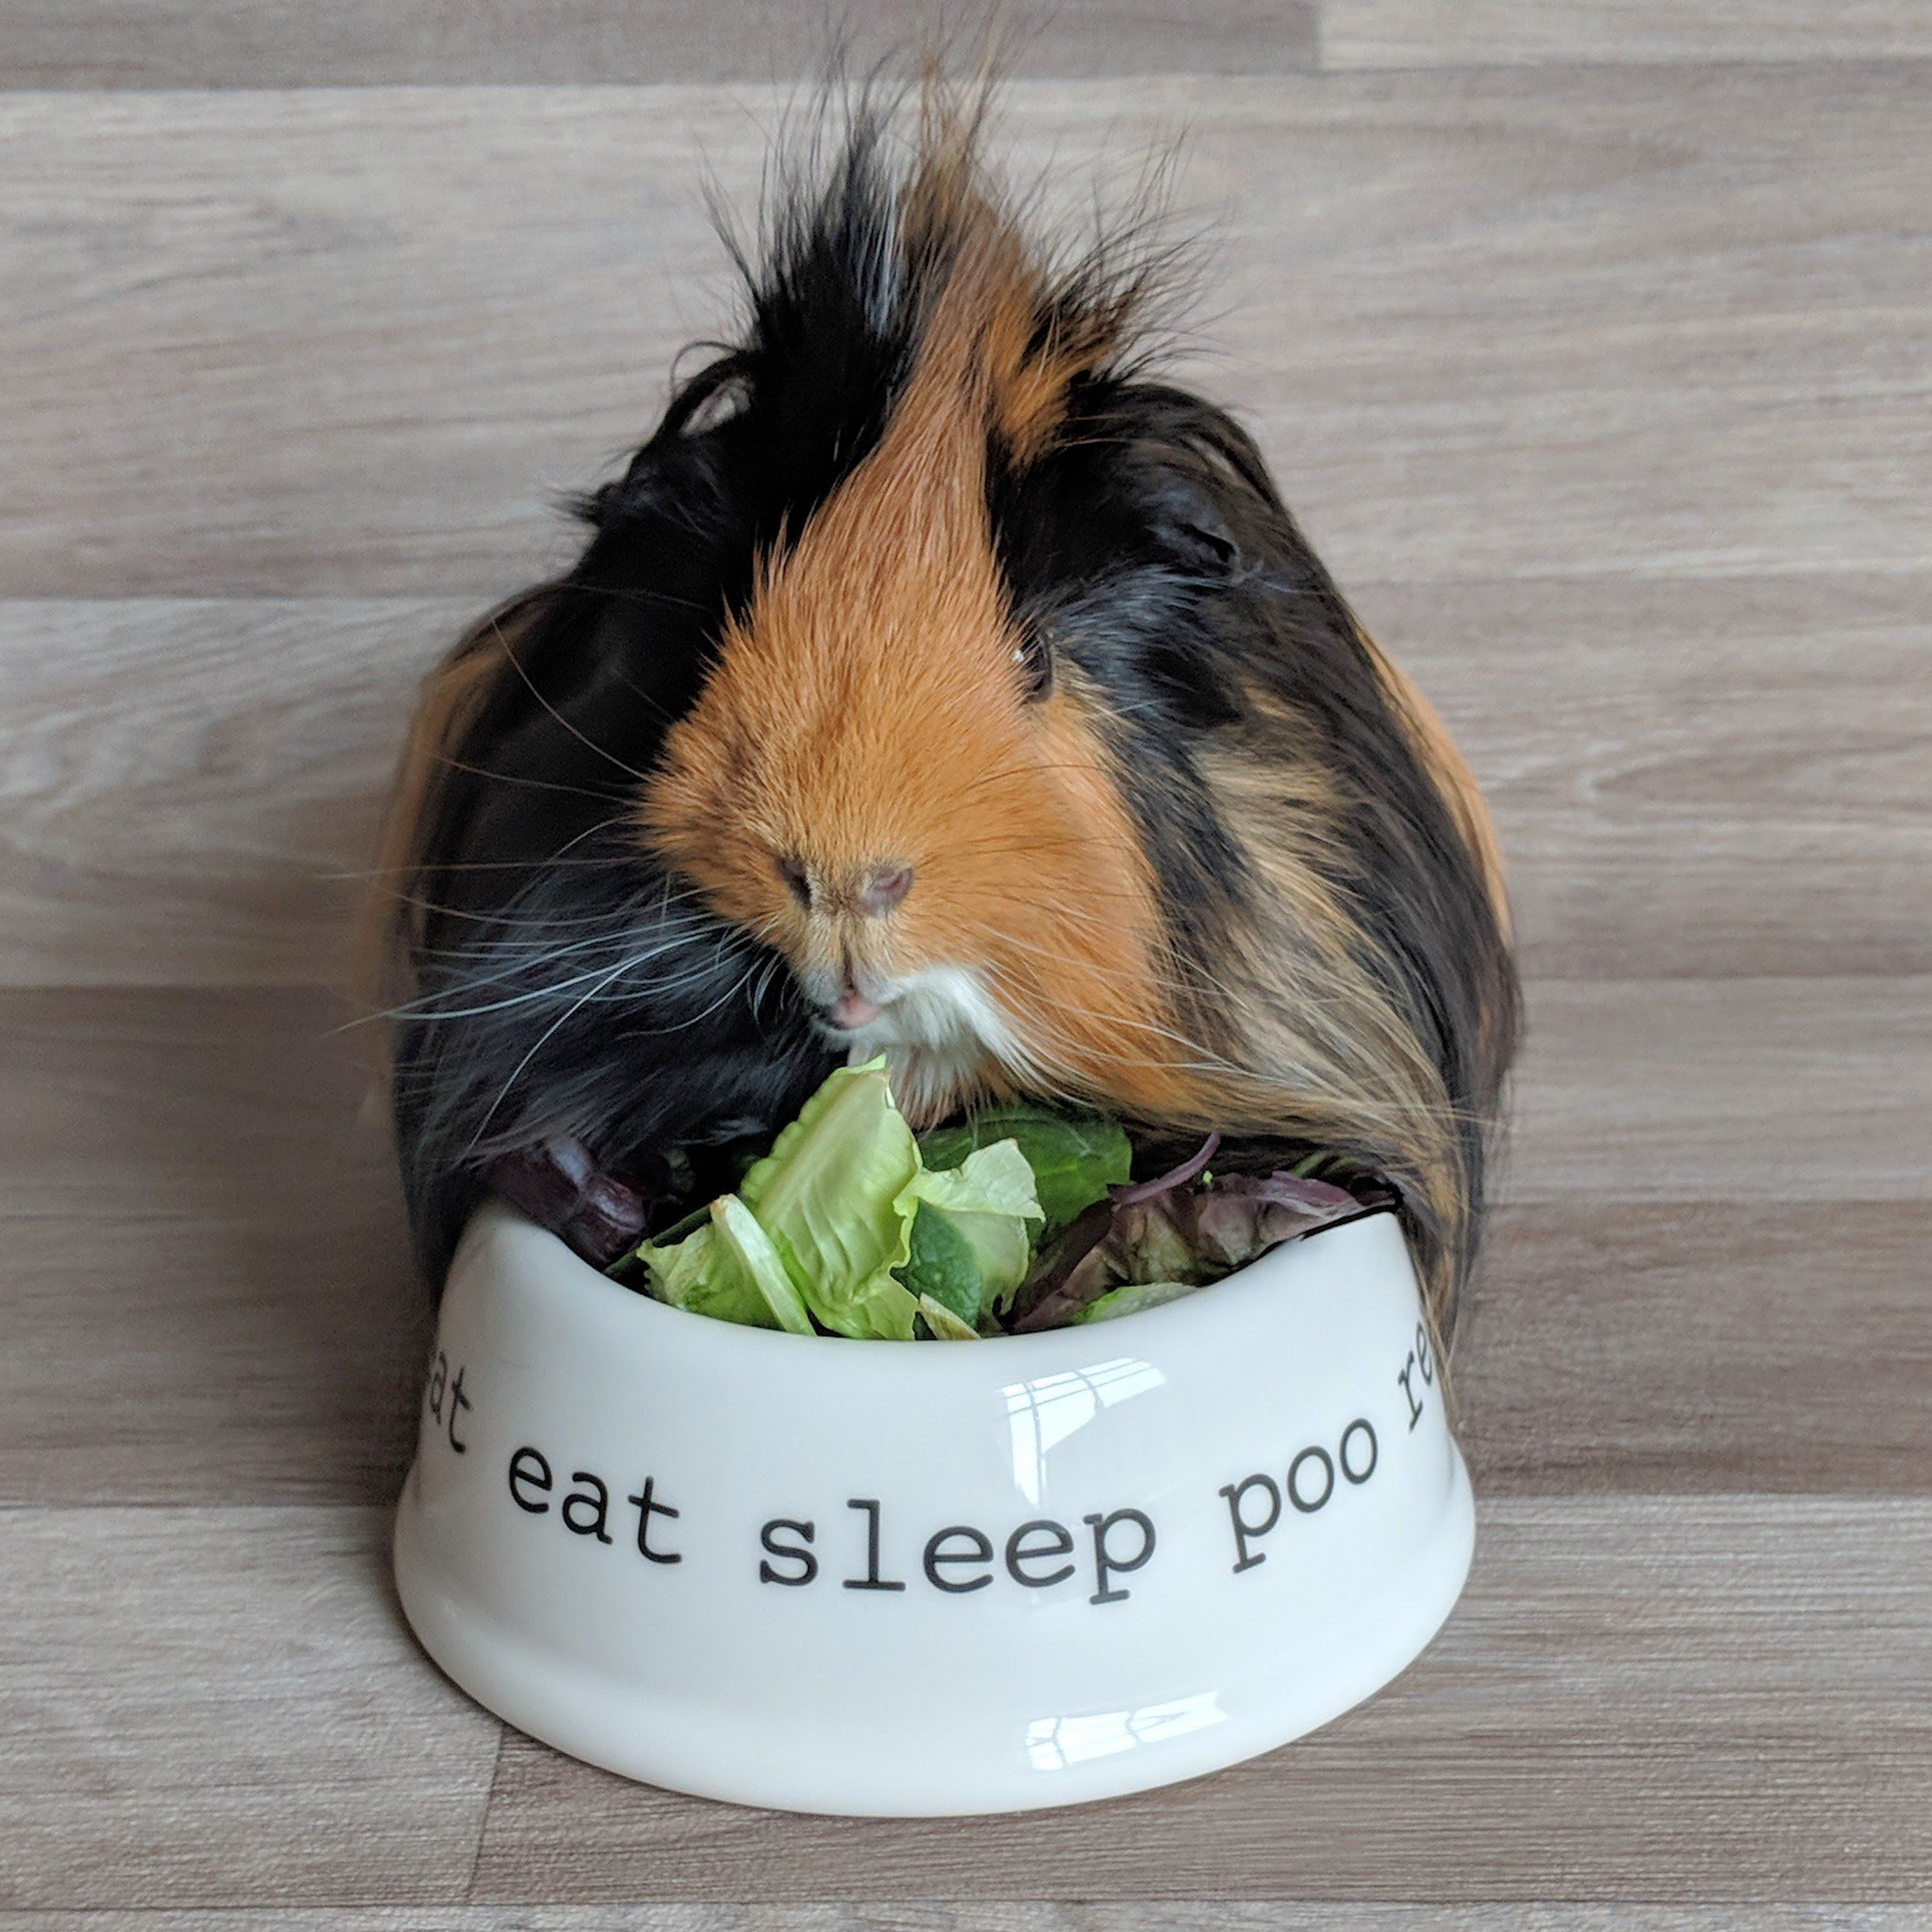 Pin on Guinea Pigs!